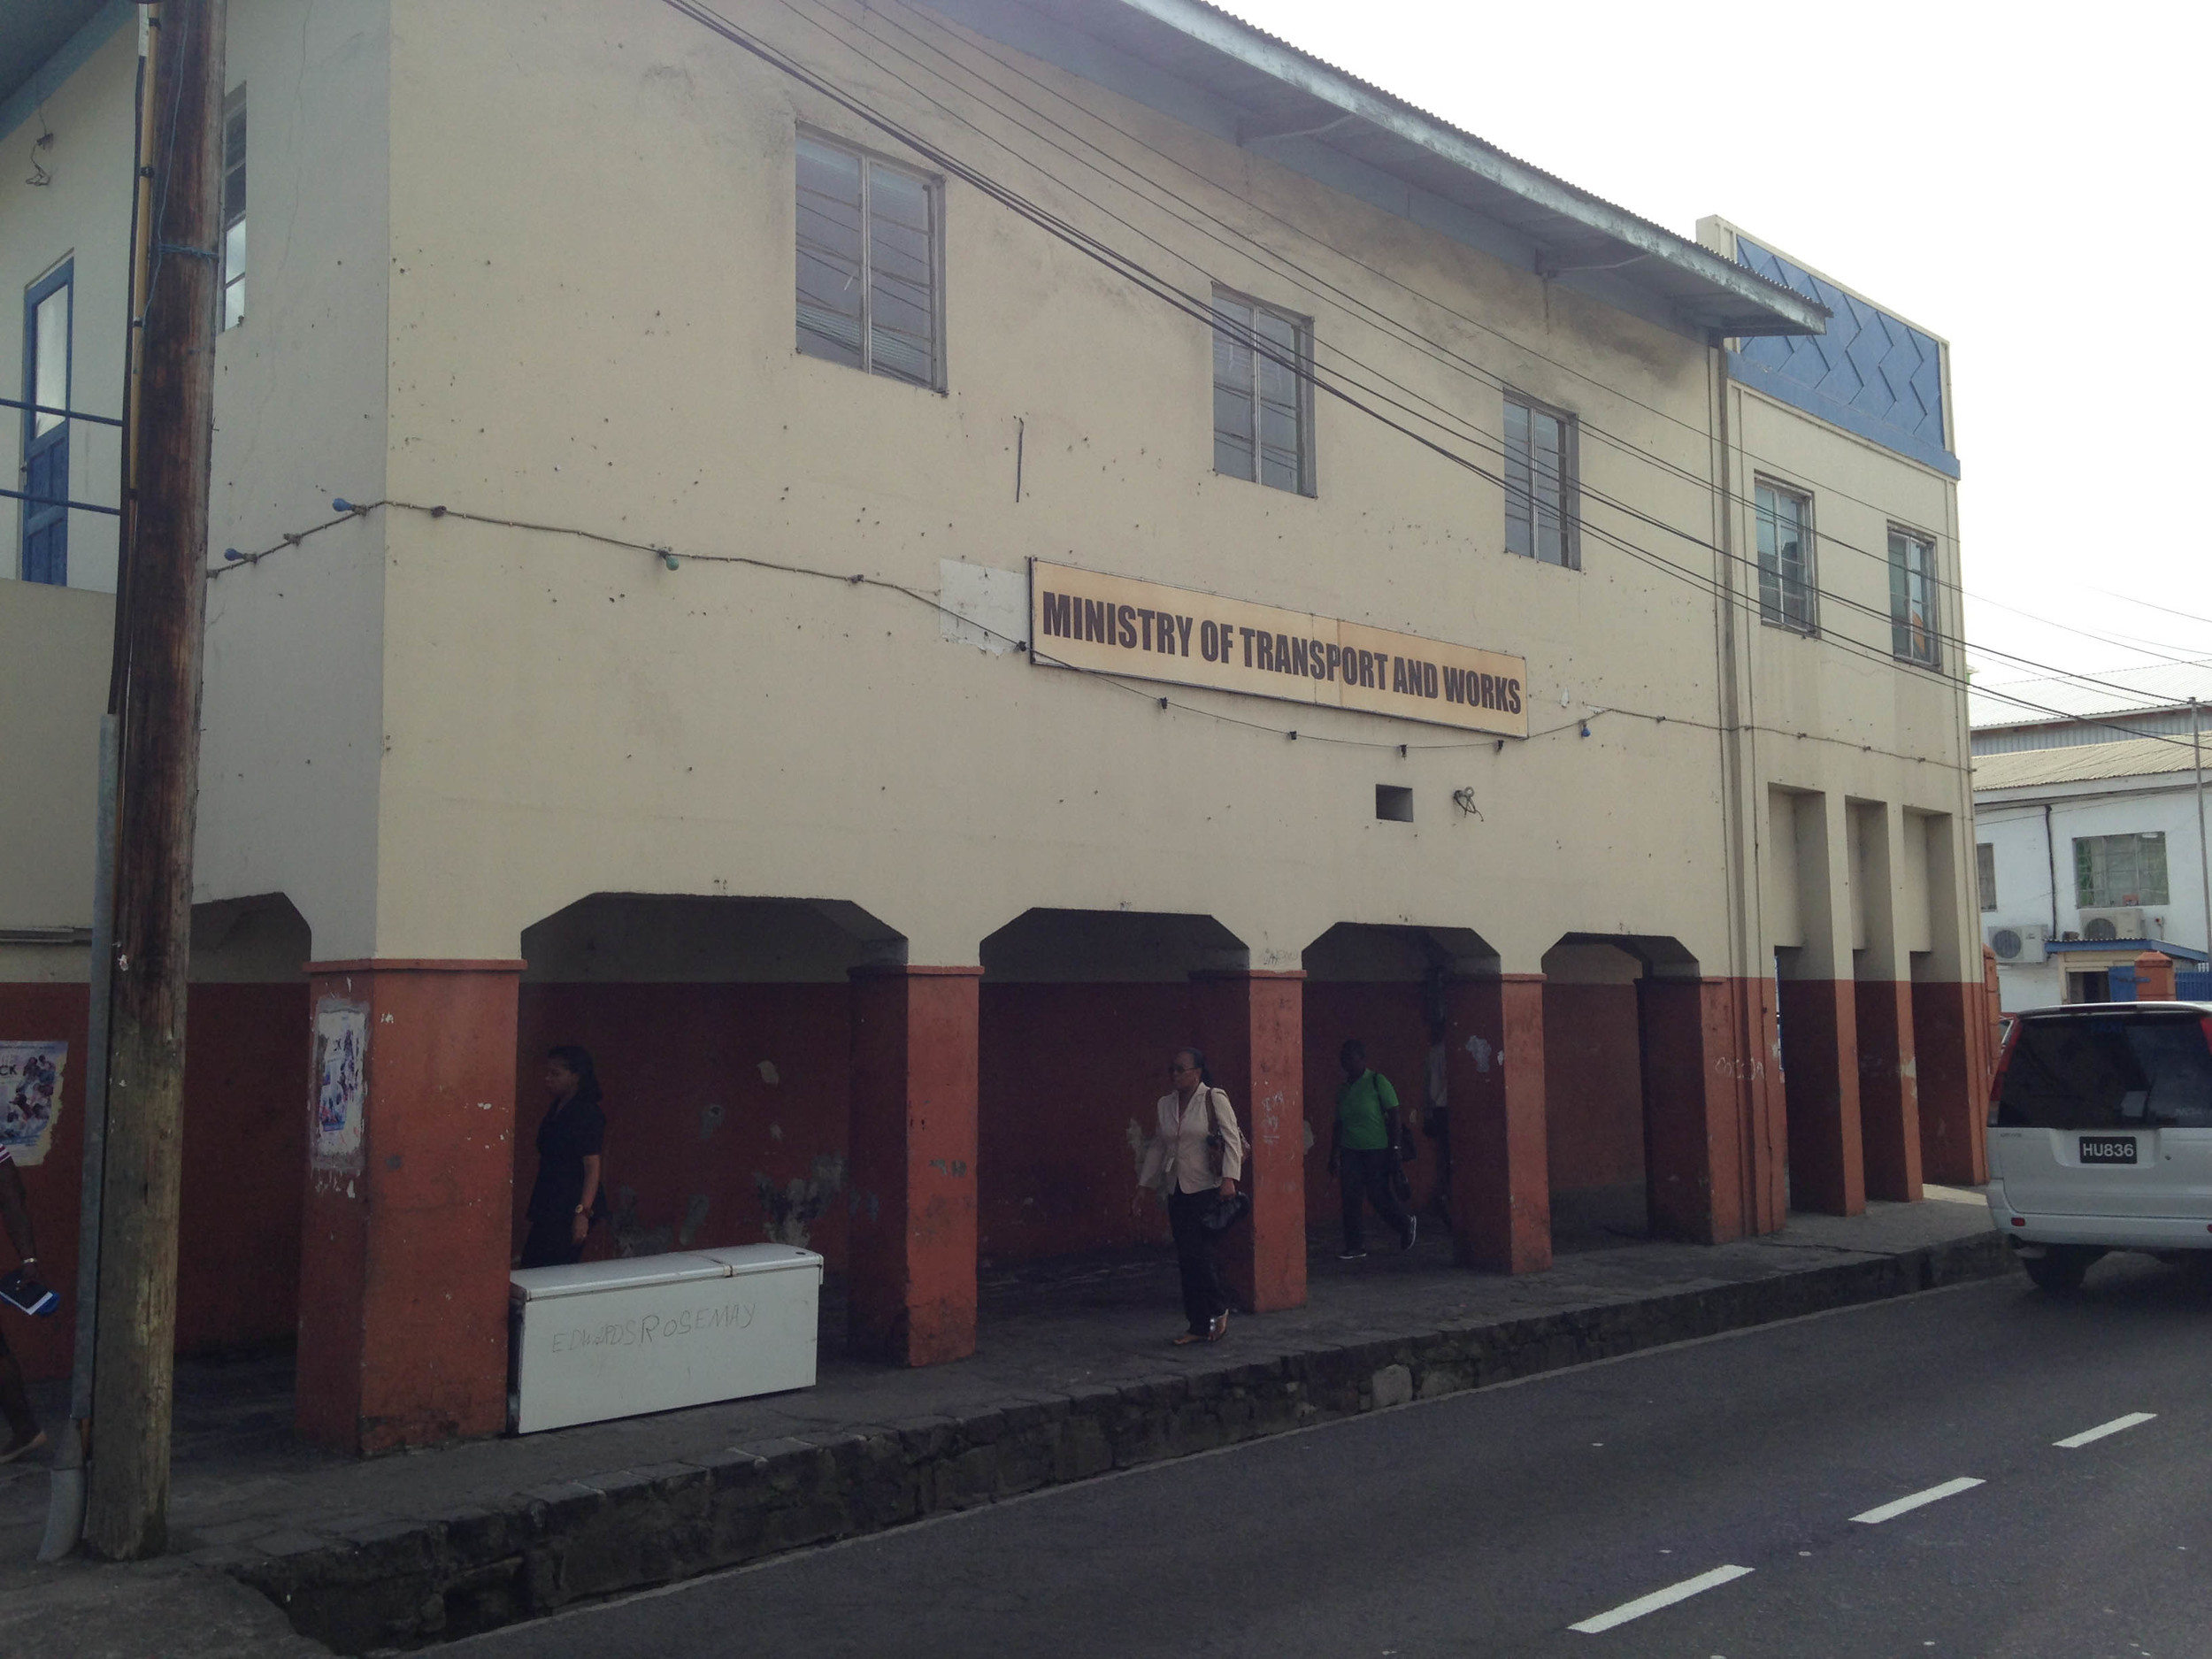 Ministry of Transport and Works Building, Kingstown, St. Vincent